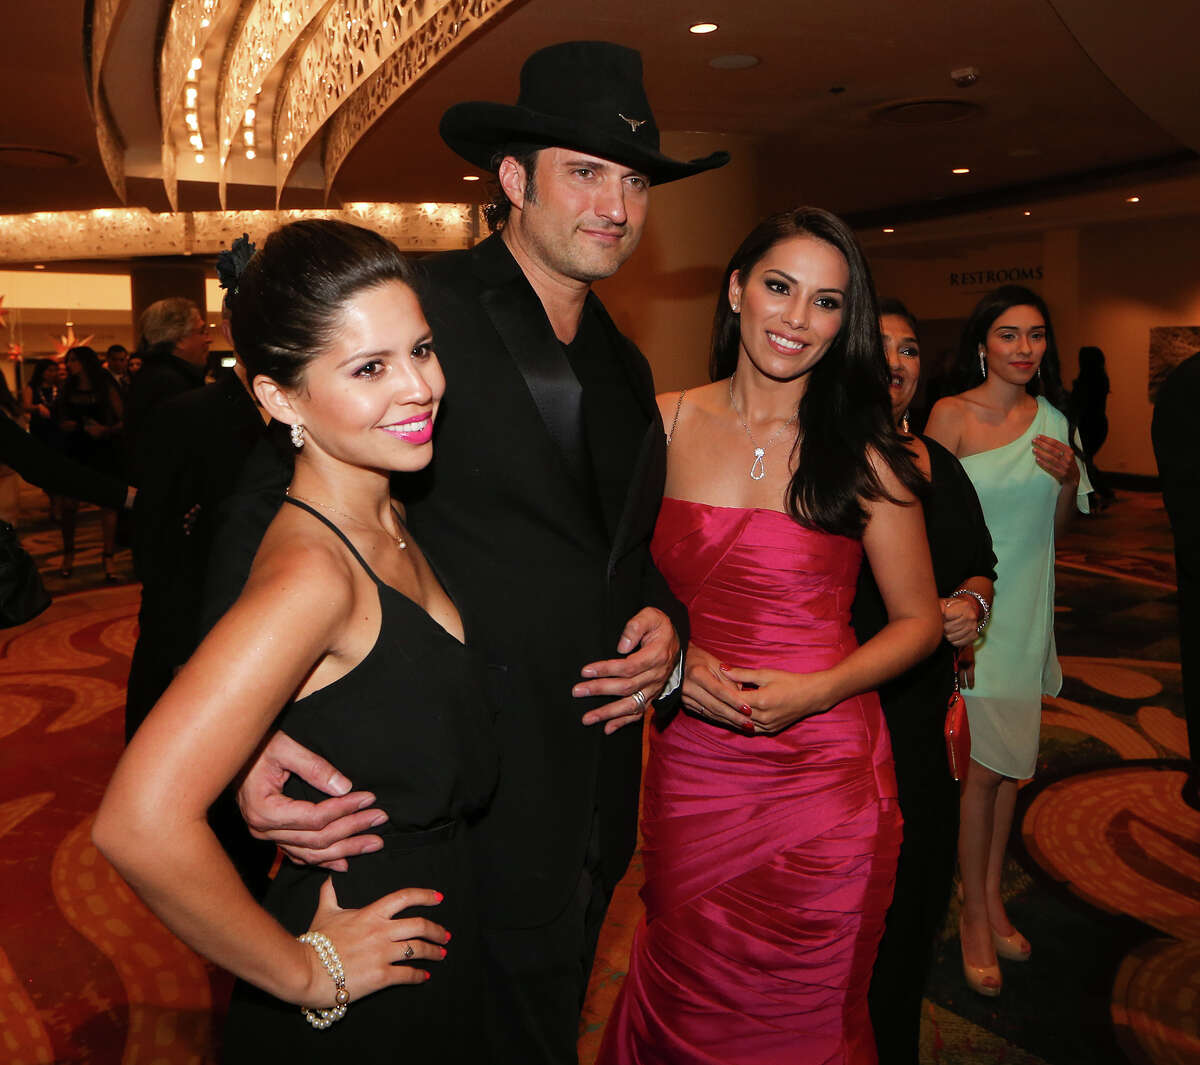 Filmmaker Robert Rodriguez (center) poses for a photo with Ana Cristina of La Prensa (left) and Mimi Gomez of KSAT during the reception for the San Antonio Association of Hispanic Journalists annual awards gala at the Marriott Rivercenter on Friday, August 8, 2014. MARVIN PFEIFFER/ mpfeiffer@express-news.net